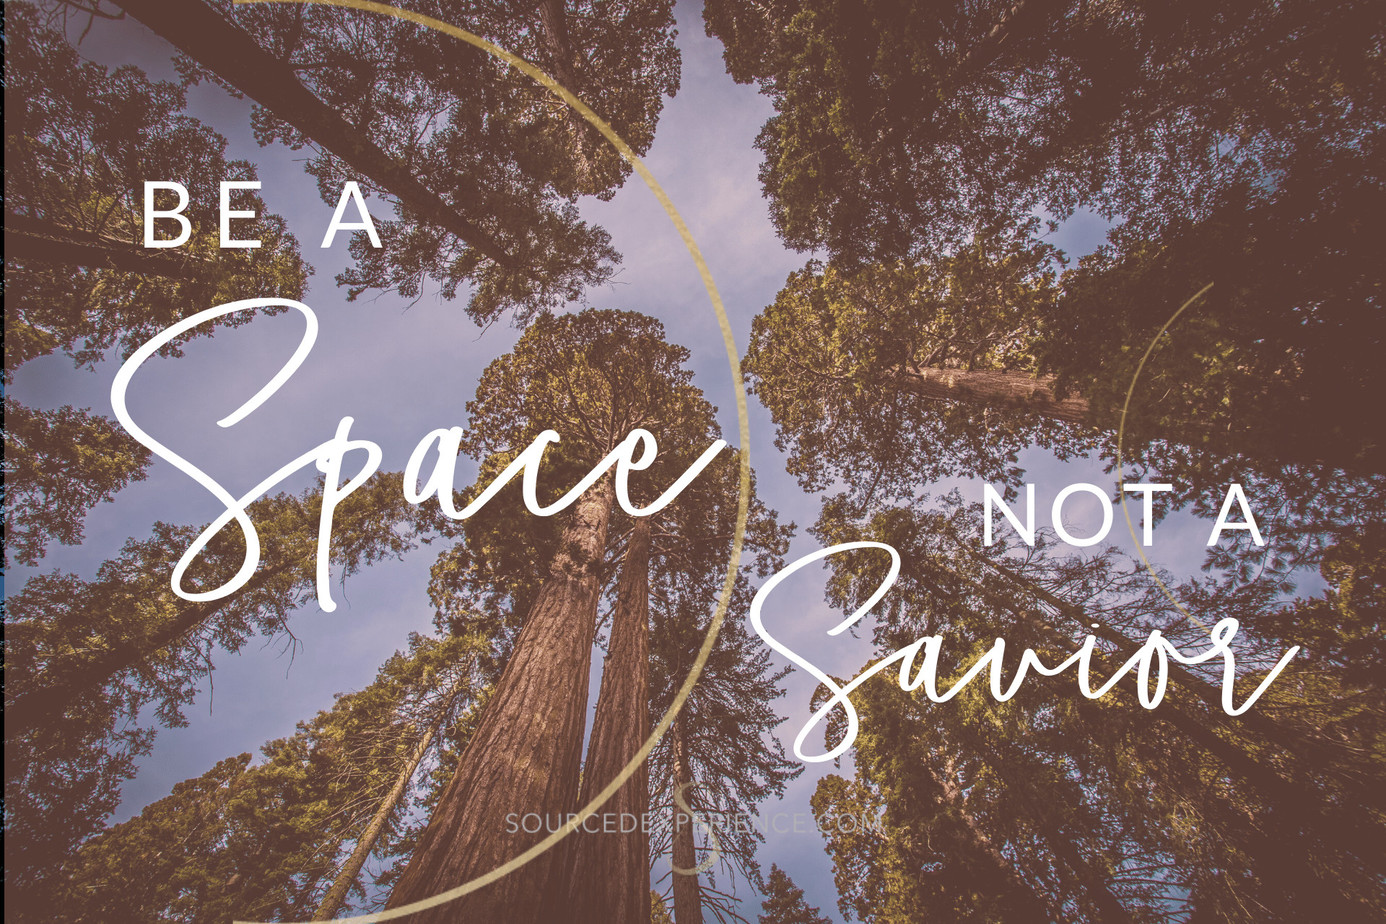 Be a space not a savior